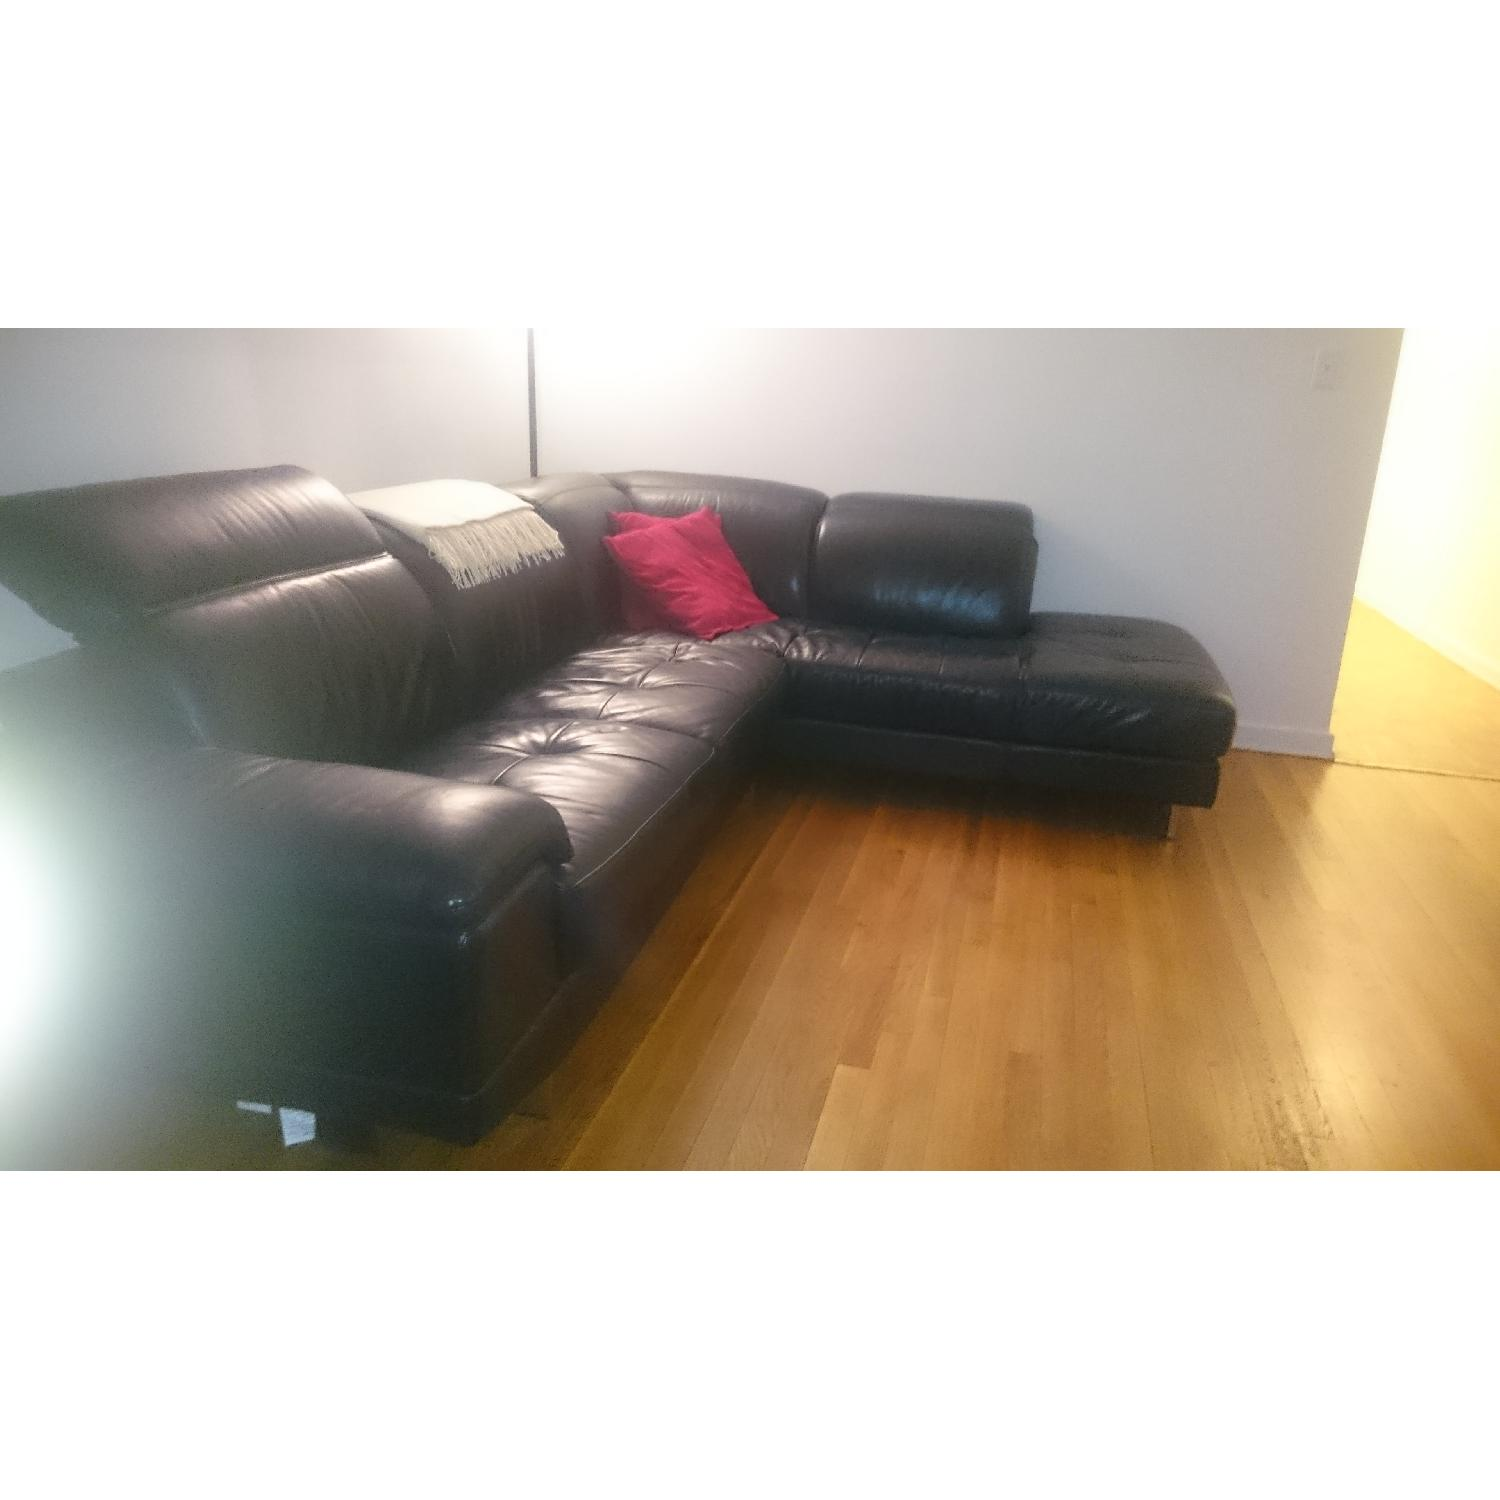 J&M Furniture Black Italian Leather Sectional Couch - image-4